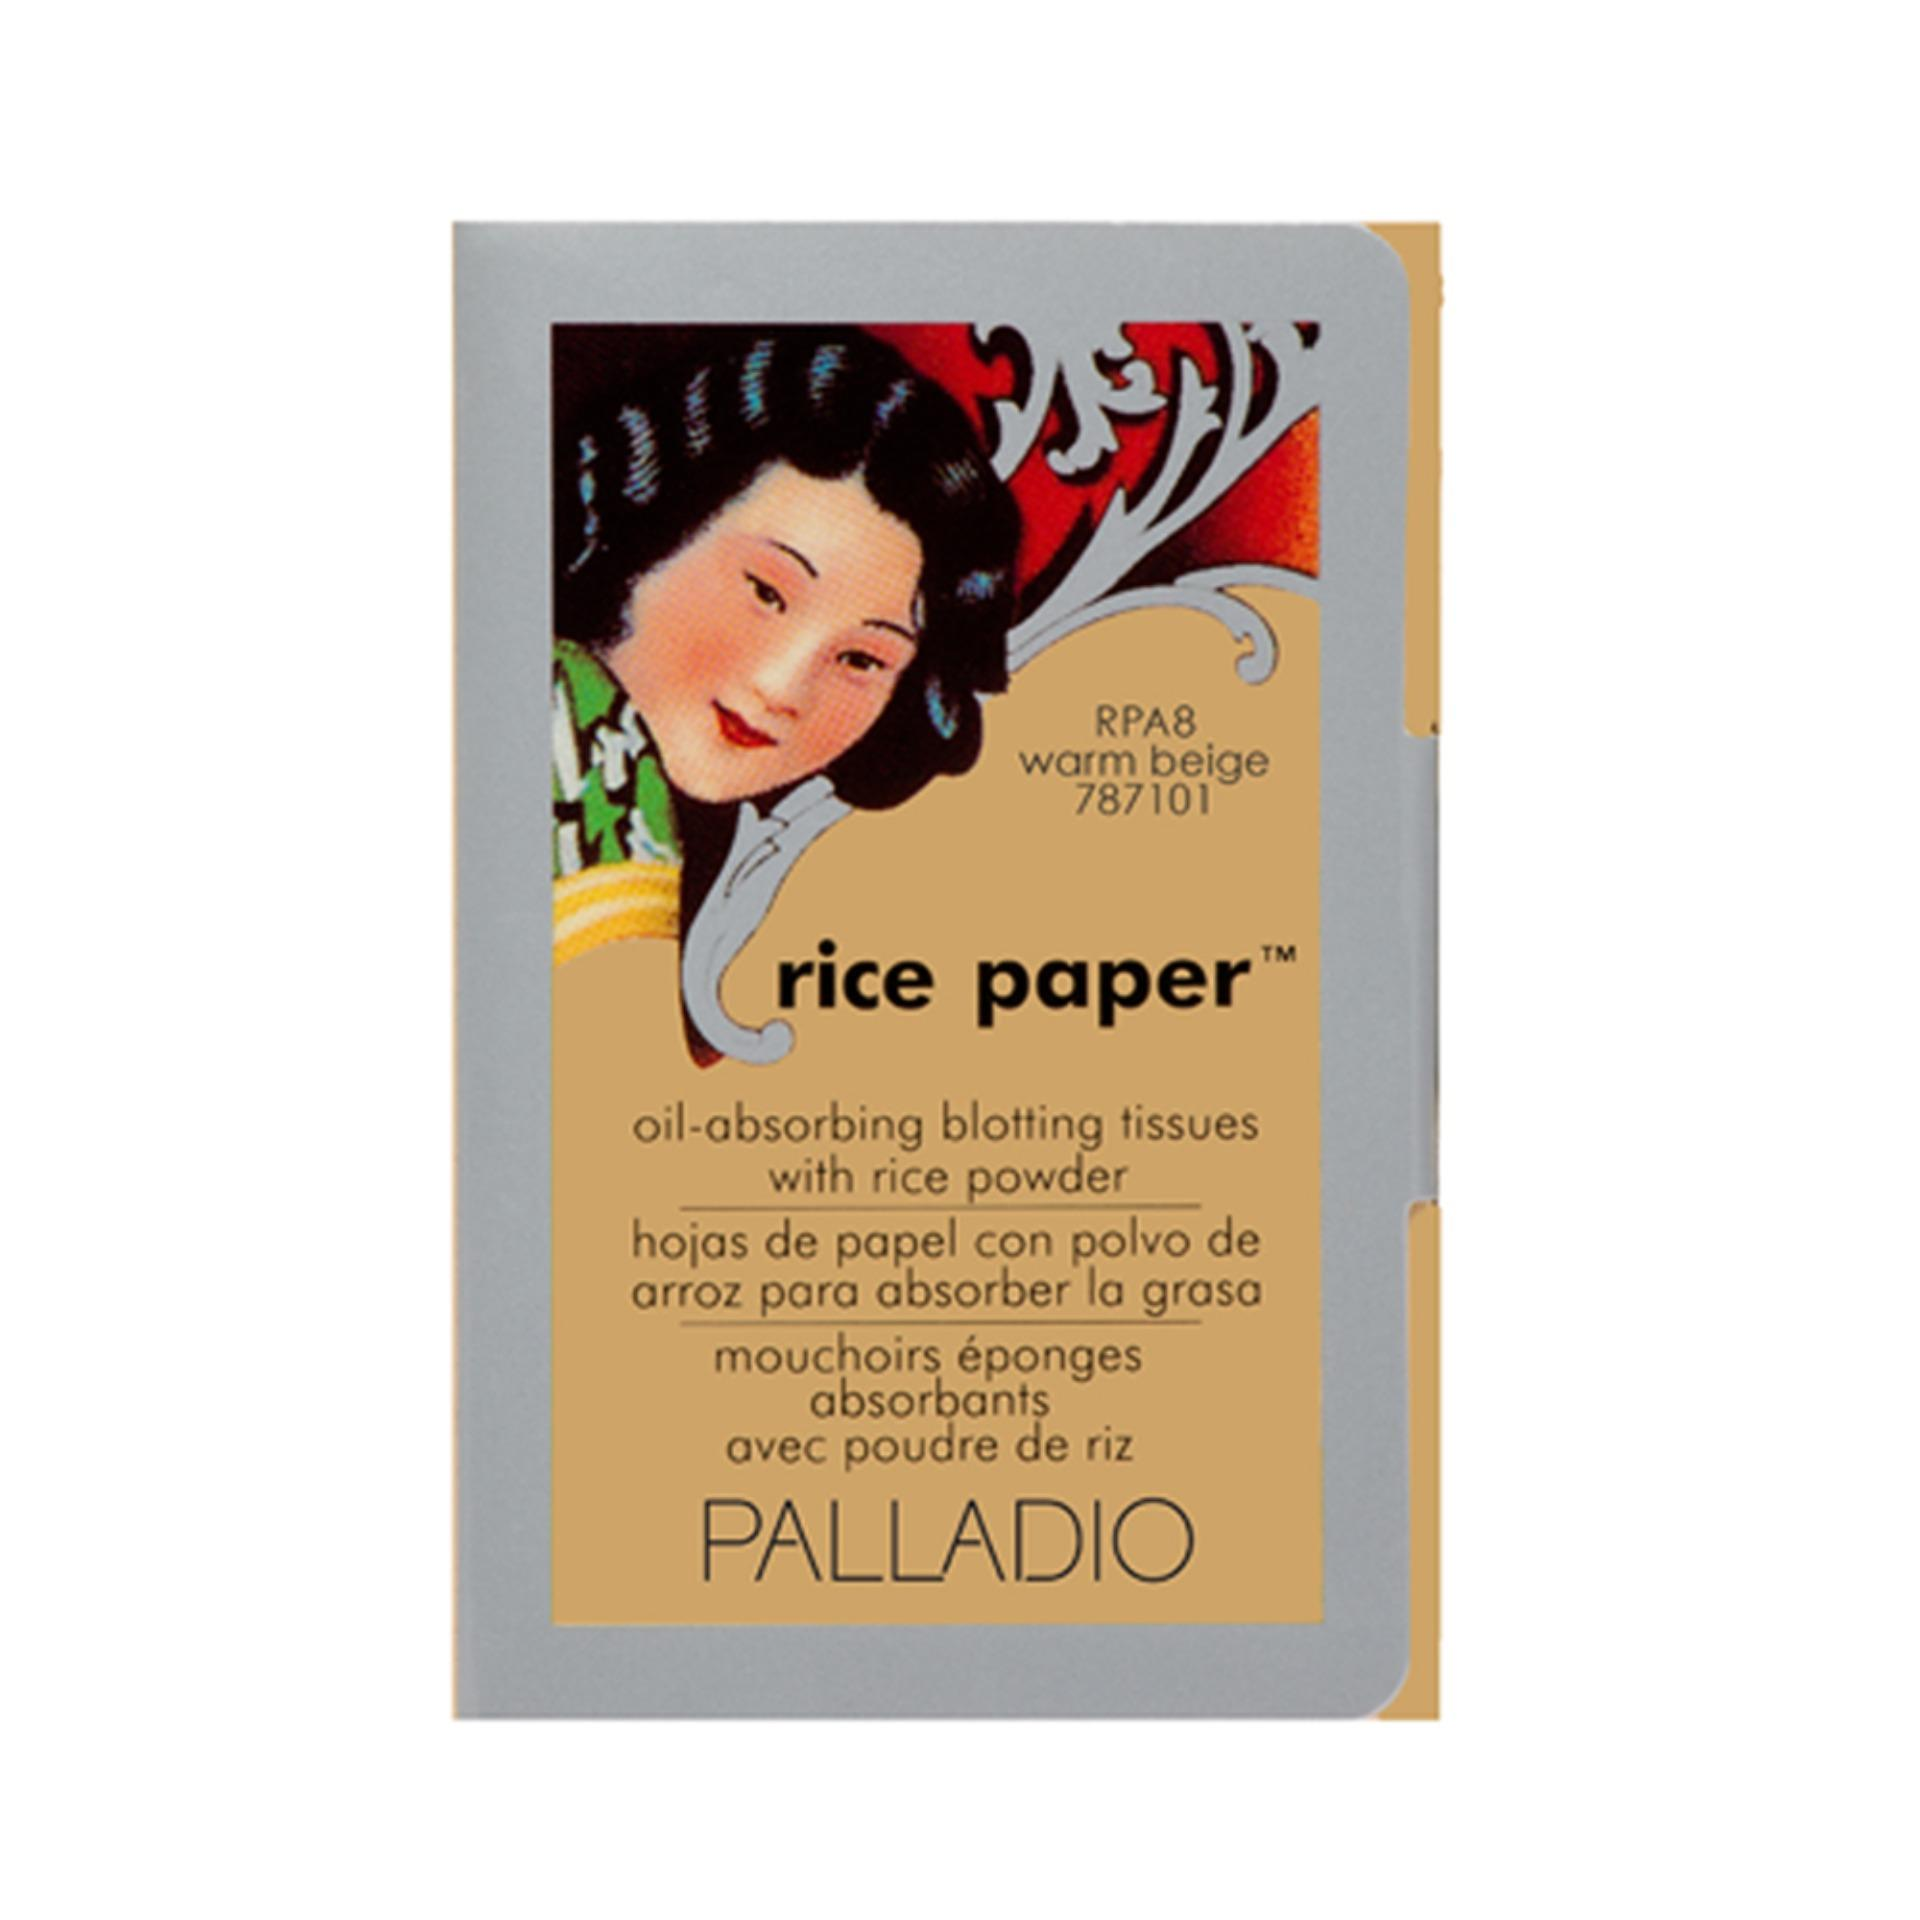 PALLADIO Warm Beige Rice Paper Philippines